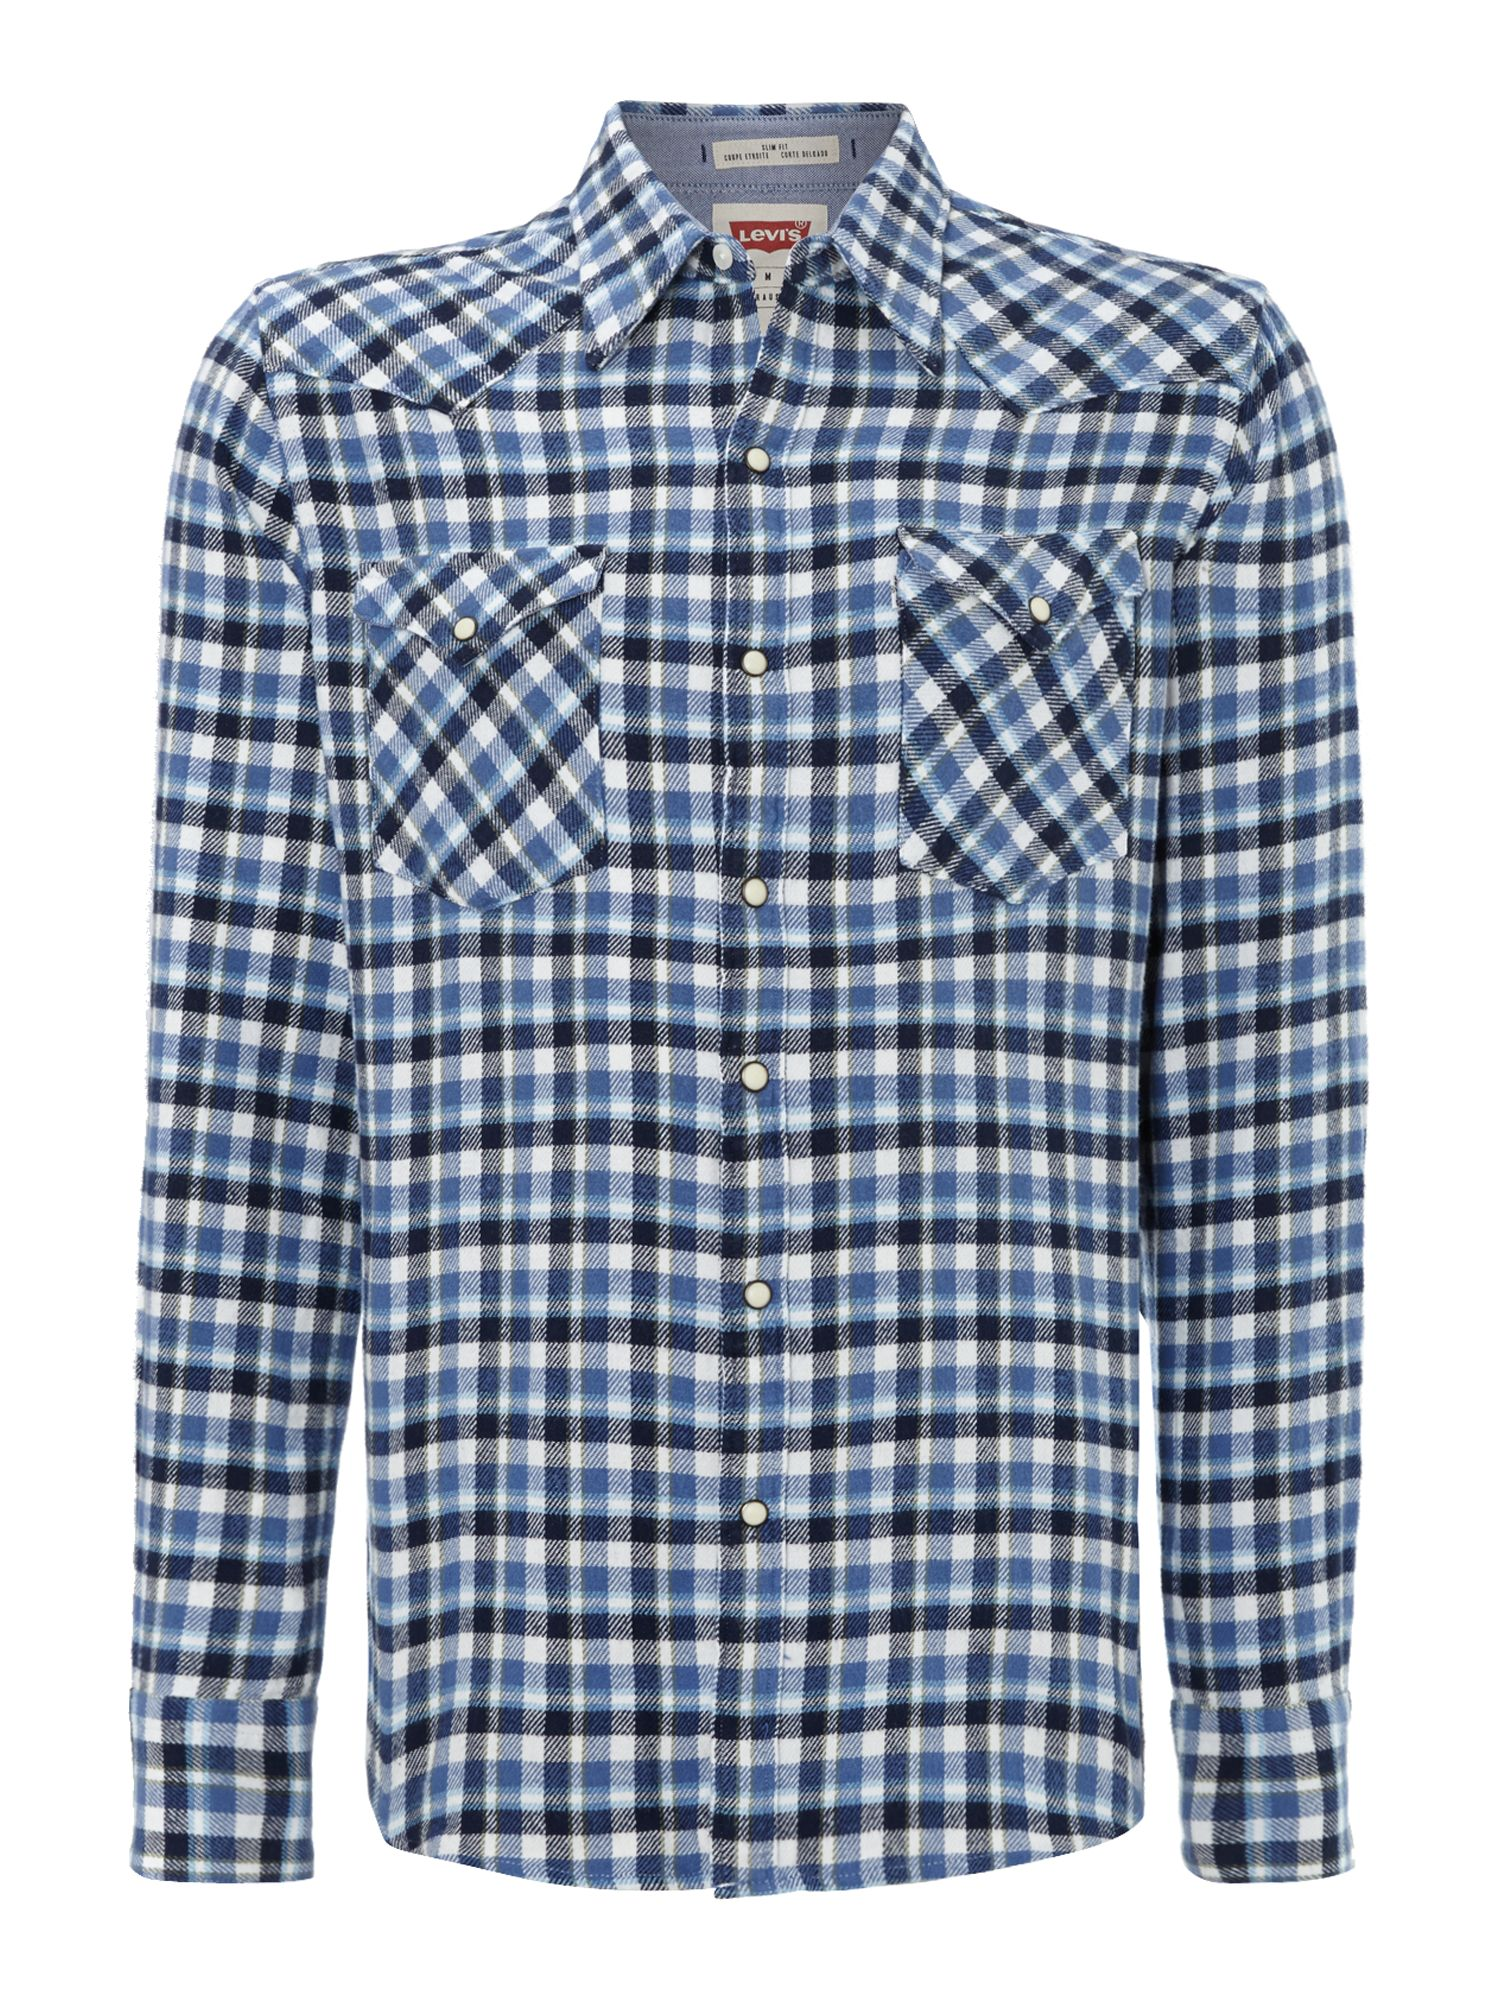 Plaid western shirt